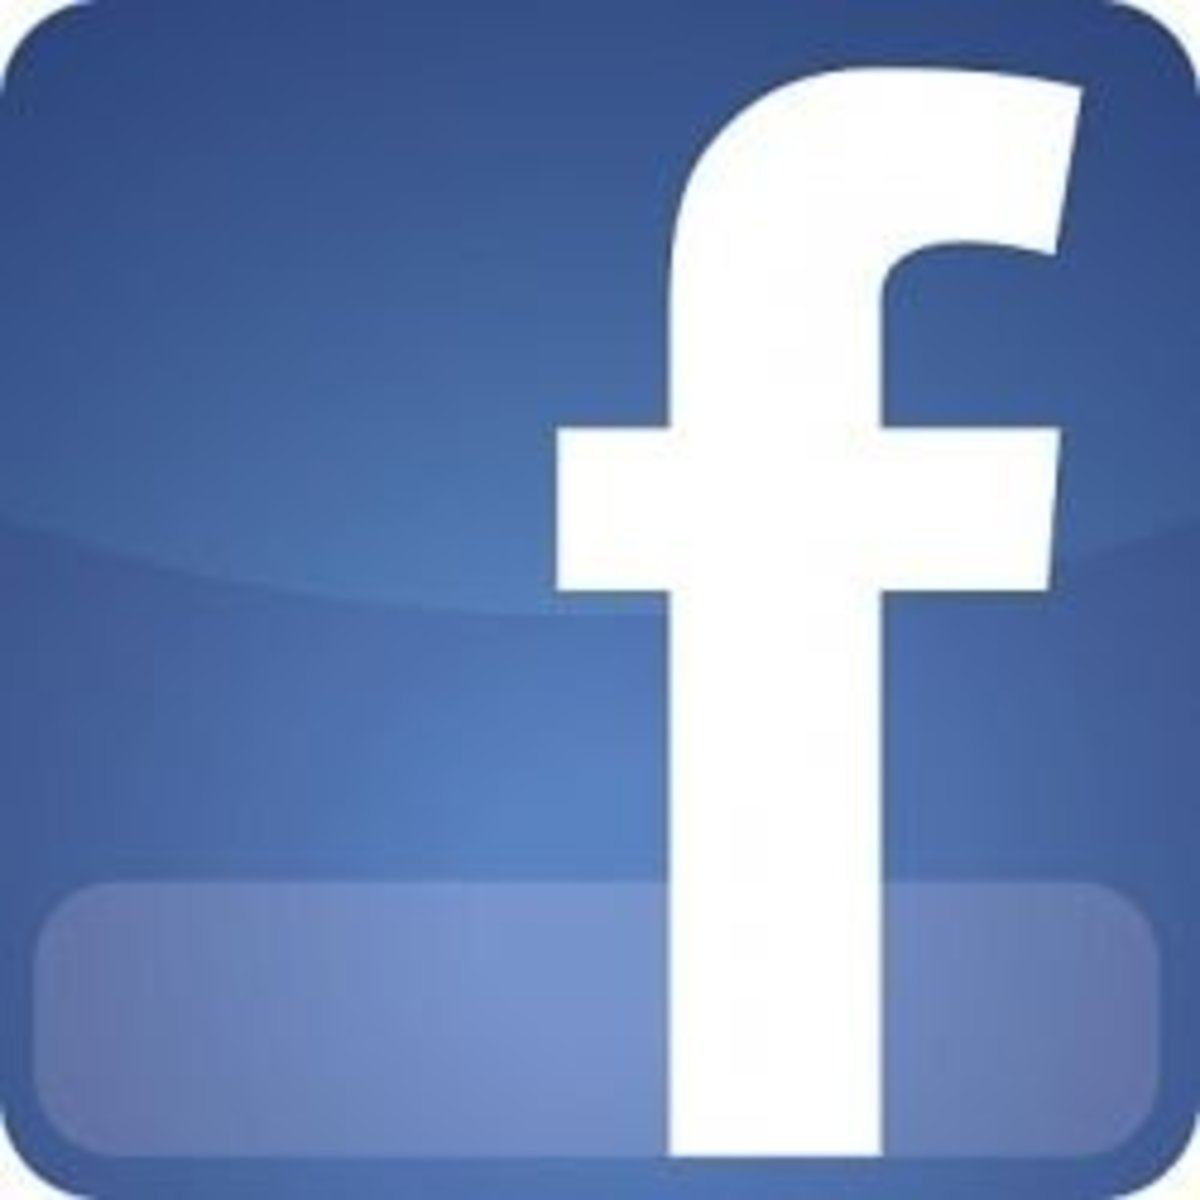 11 Sites Like Facebook - Other Social Networking Sites